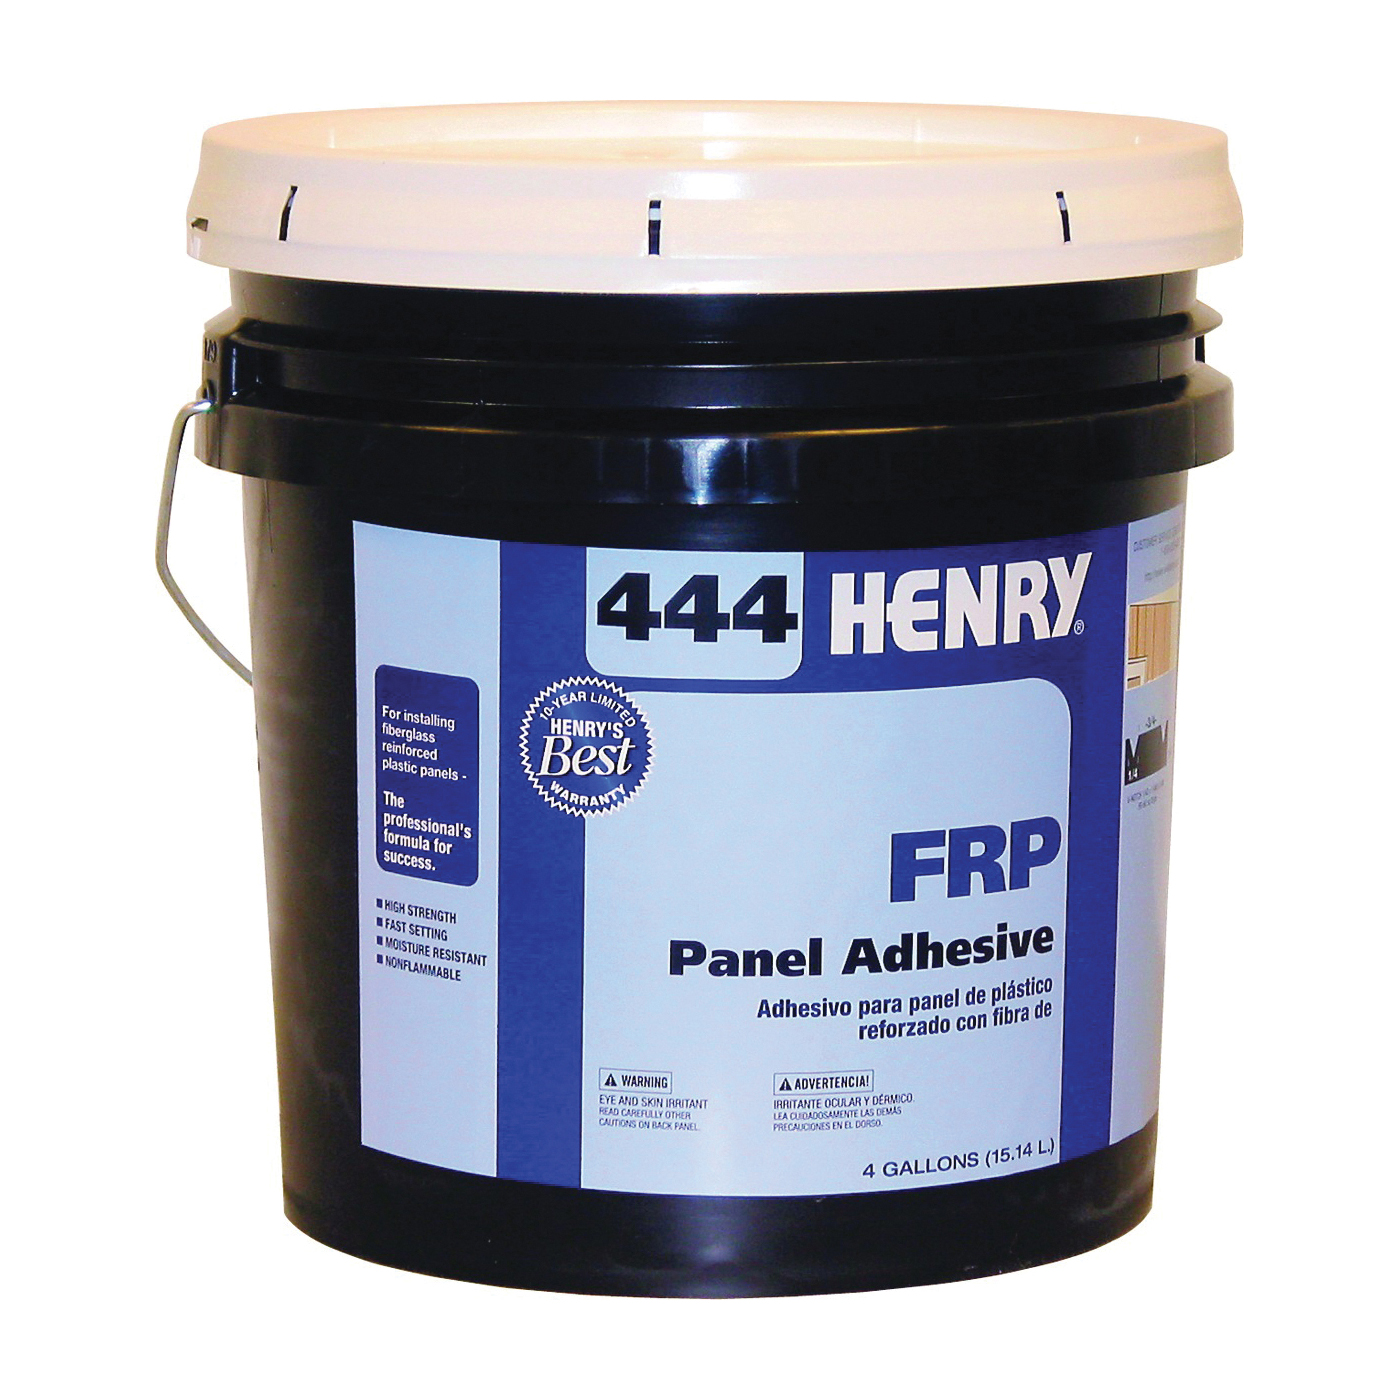 Picture of HENRY 12118 Panel Adhesive, Off-White, 4 gal Package, Pail